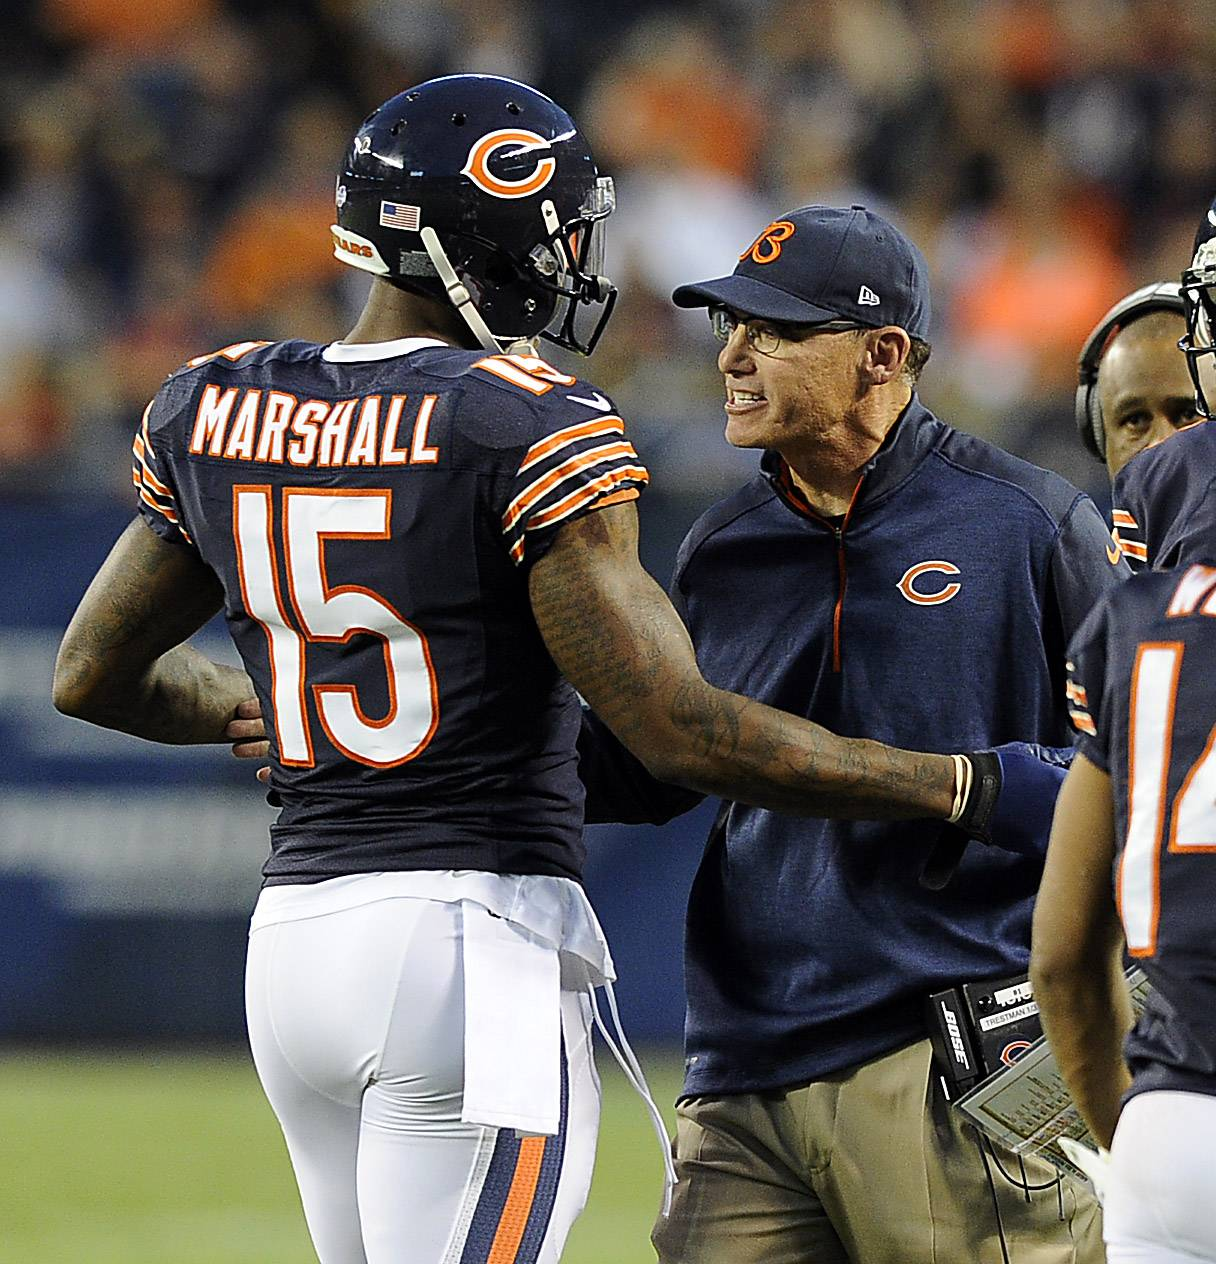 Bears coach Marc Trestman, talking with receiver Brandon Marshall after a preseason touchdown, will have to rely on some sort of luck if the season is going to be a success. All NFL teams do.